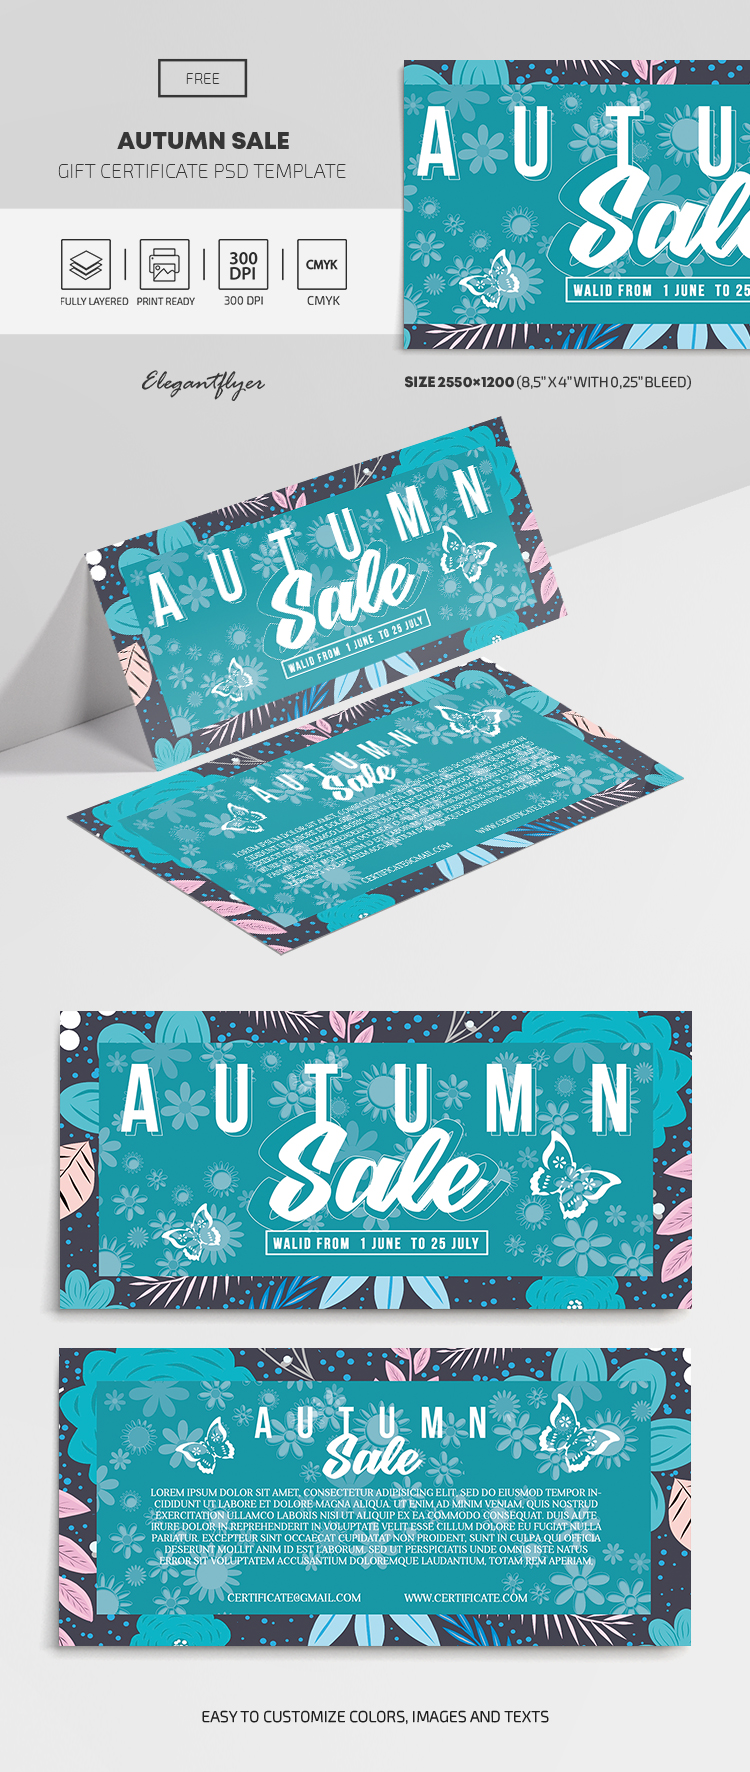 Autumn Sale – Free Gift Certificate Template in PSD